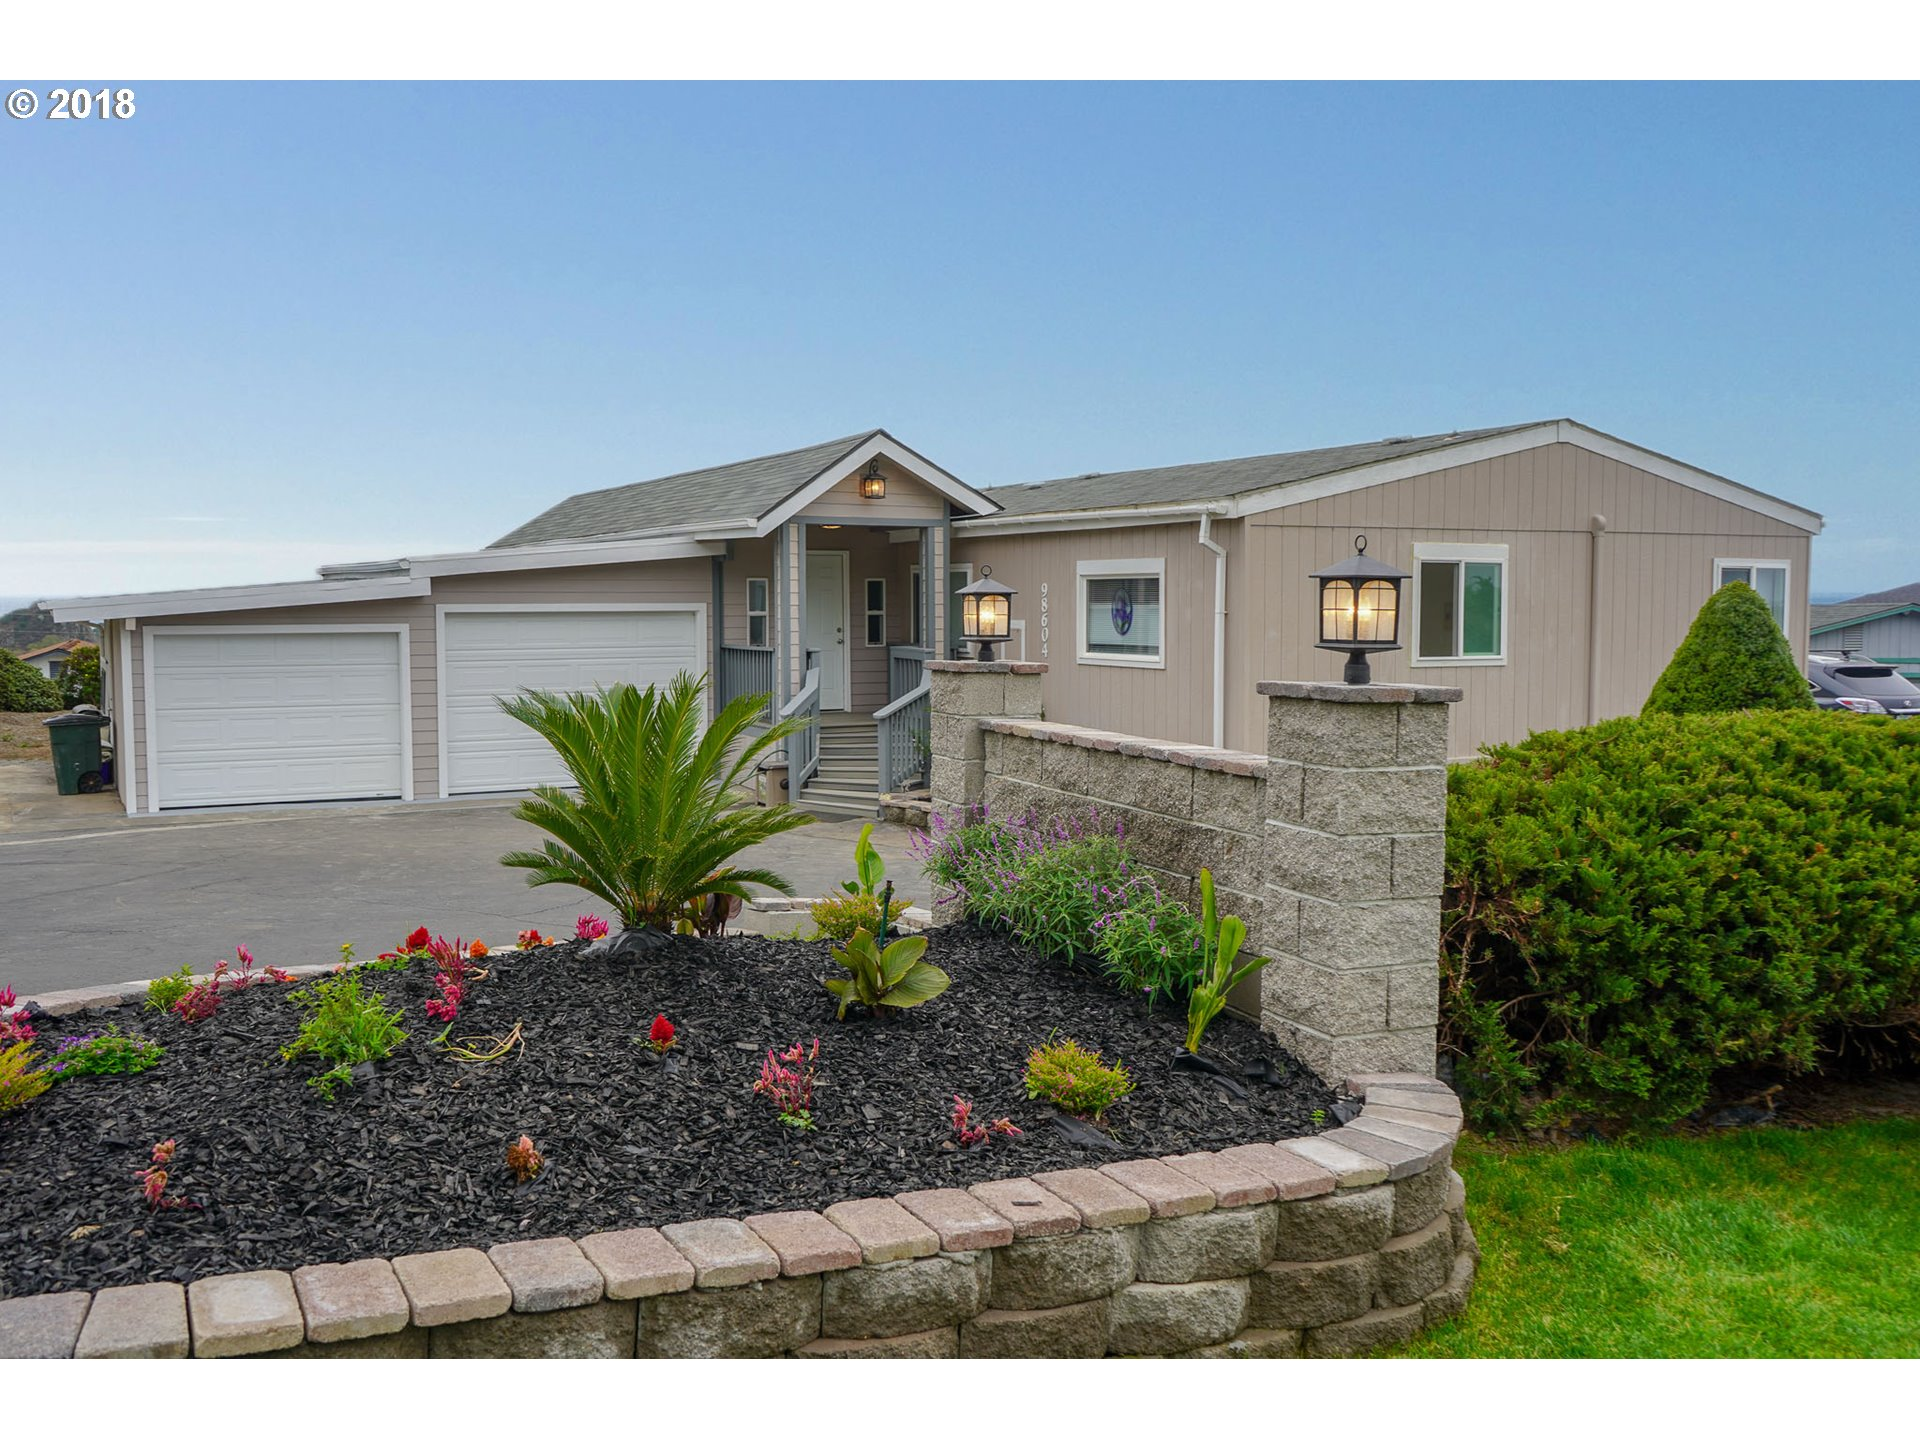 98604 CAMELLIA DR Brookings, OR 97415 - MLS #: 18630139